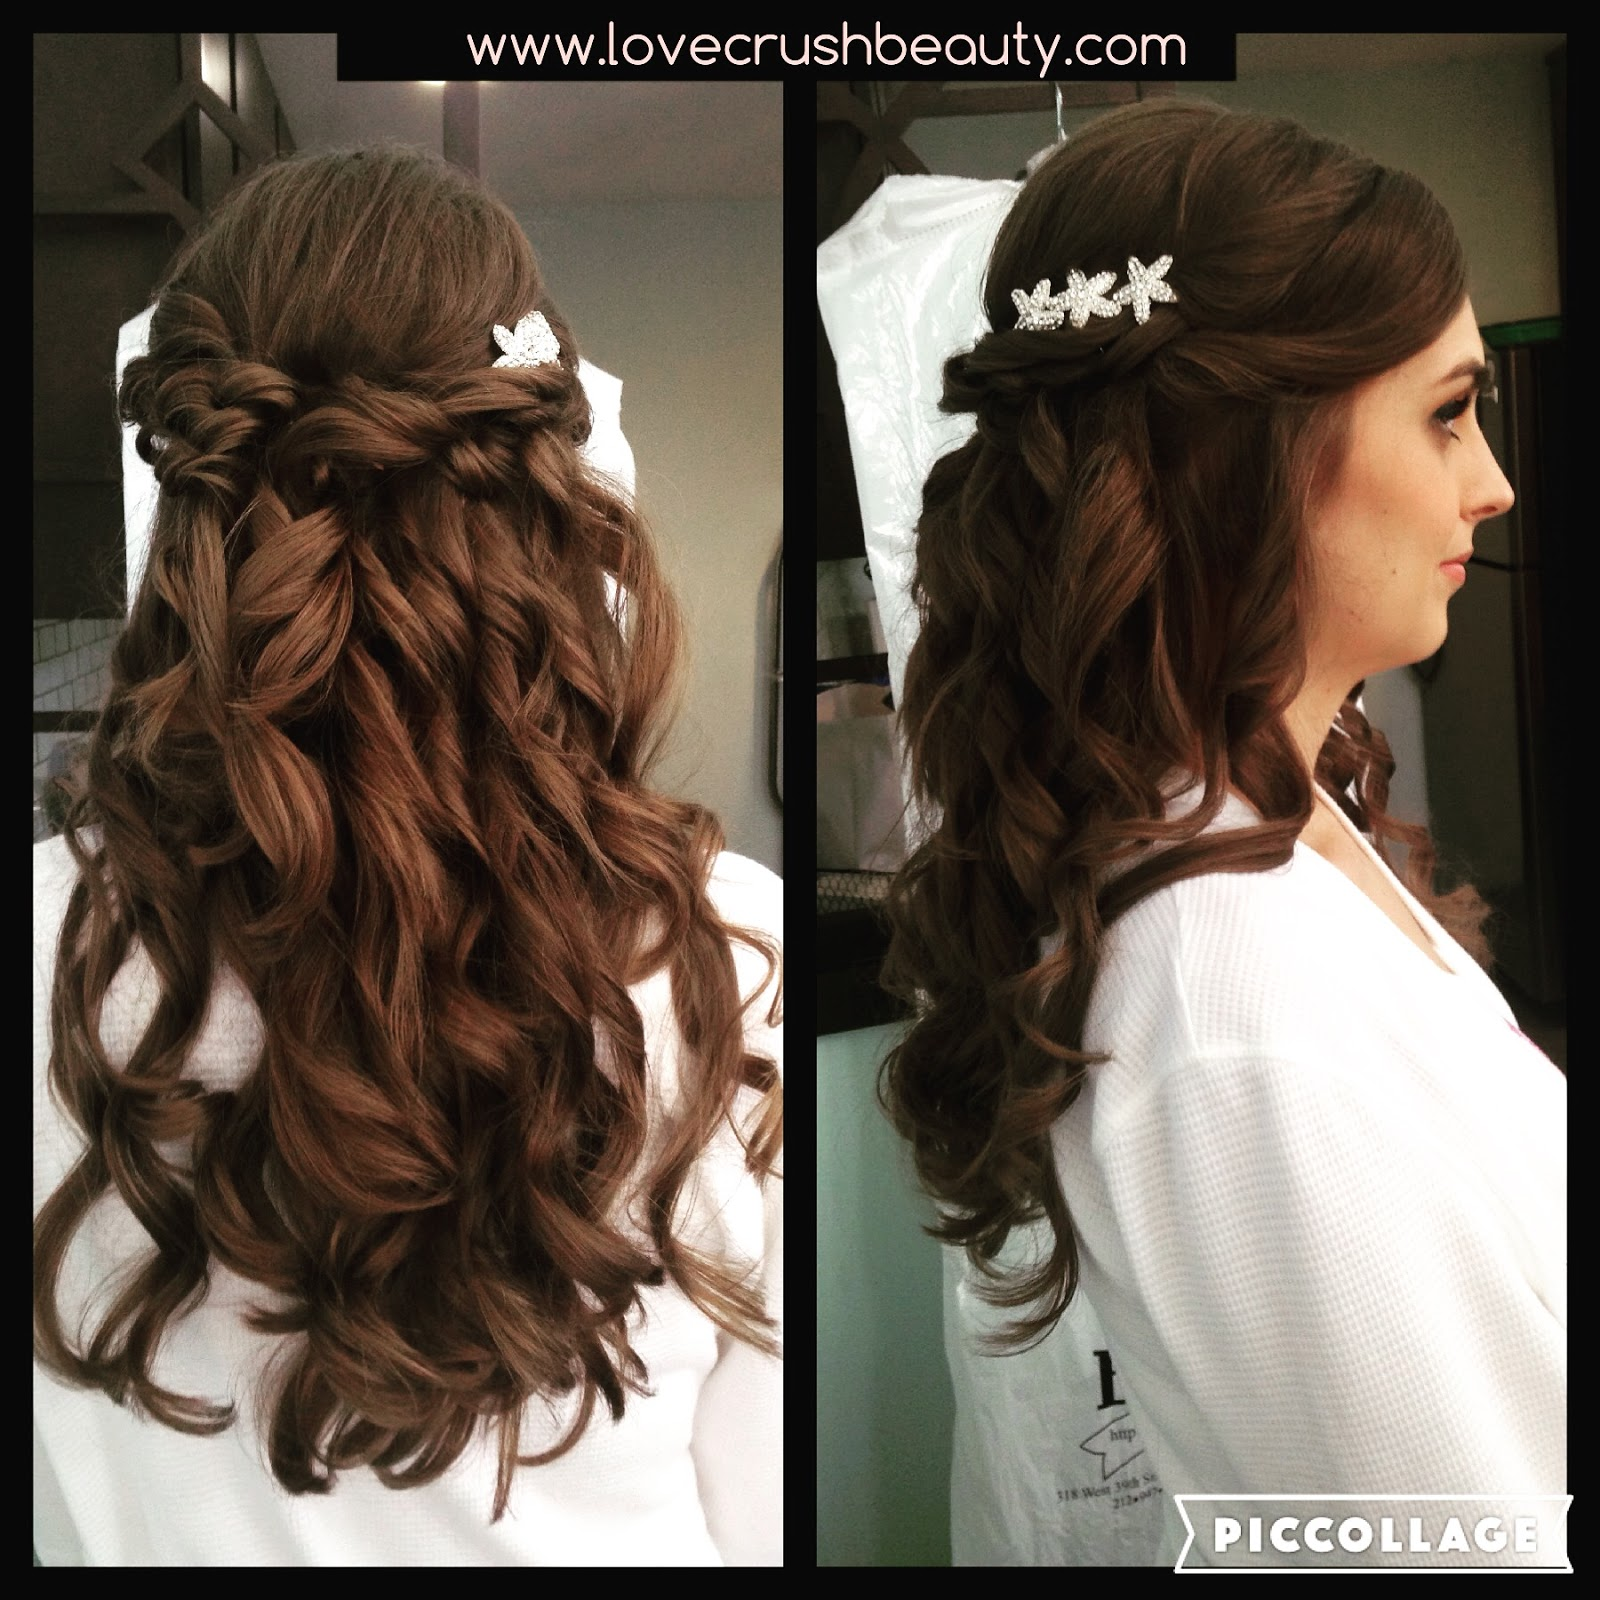 Montauk Ny Makeup Artists And Hair Stylists For Weddings Only The